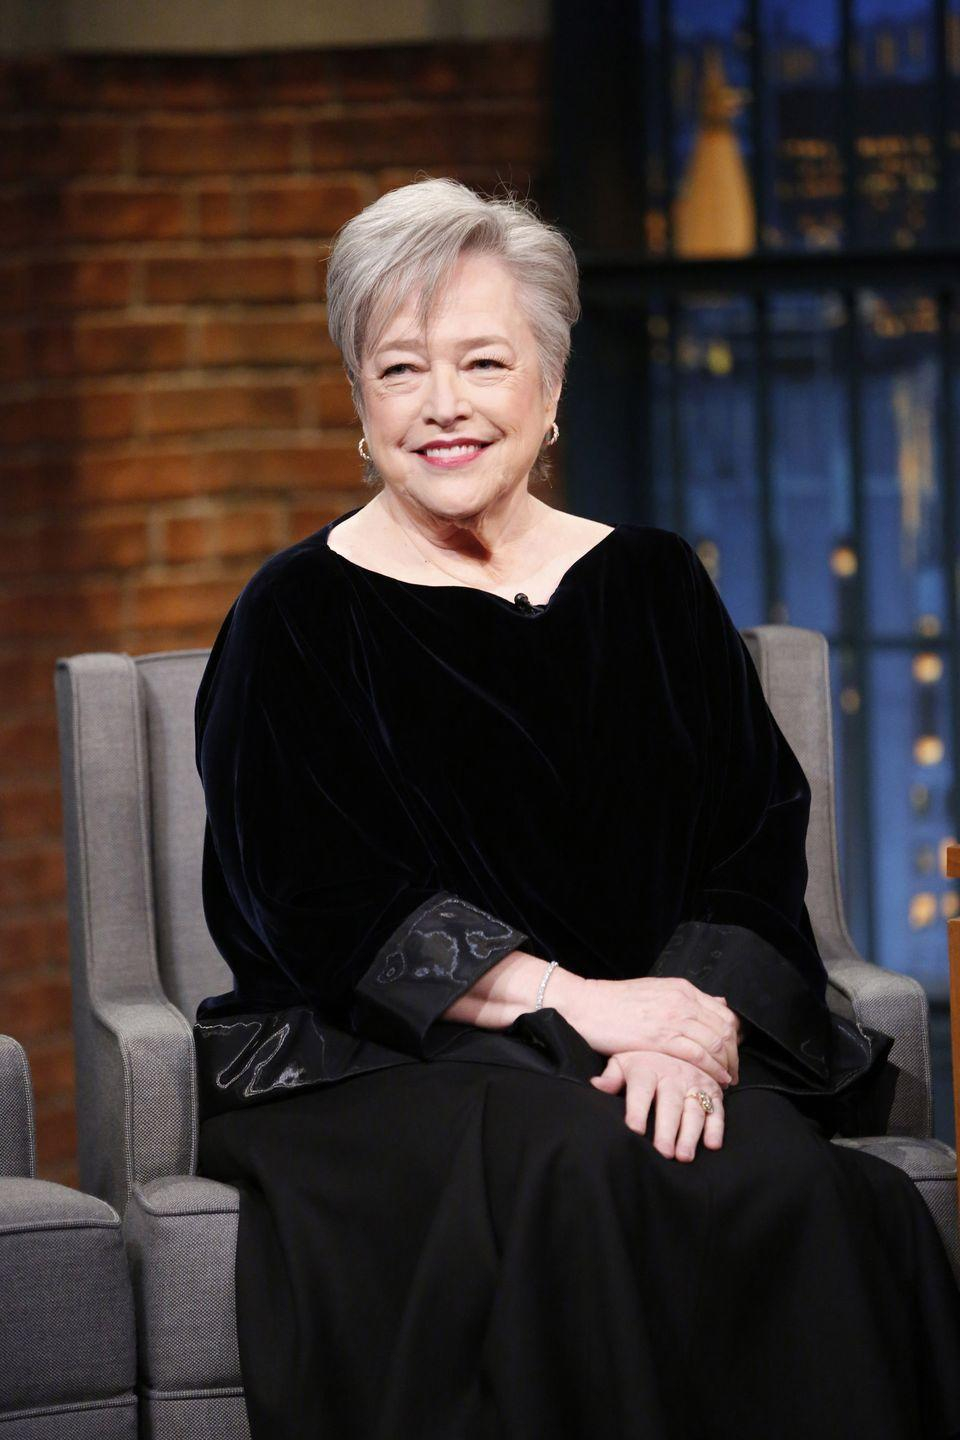 <p>Kathy Bates is another actress who spent significant time in the South: She was born and raised in Memphis, Tennessee, and graduated from Southern Methodist University in 1969 with a degree in theatre.</p>